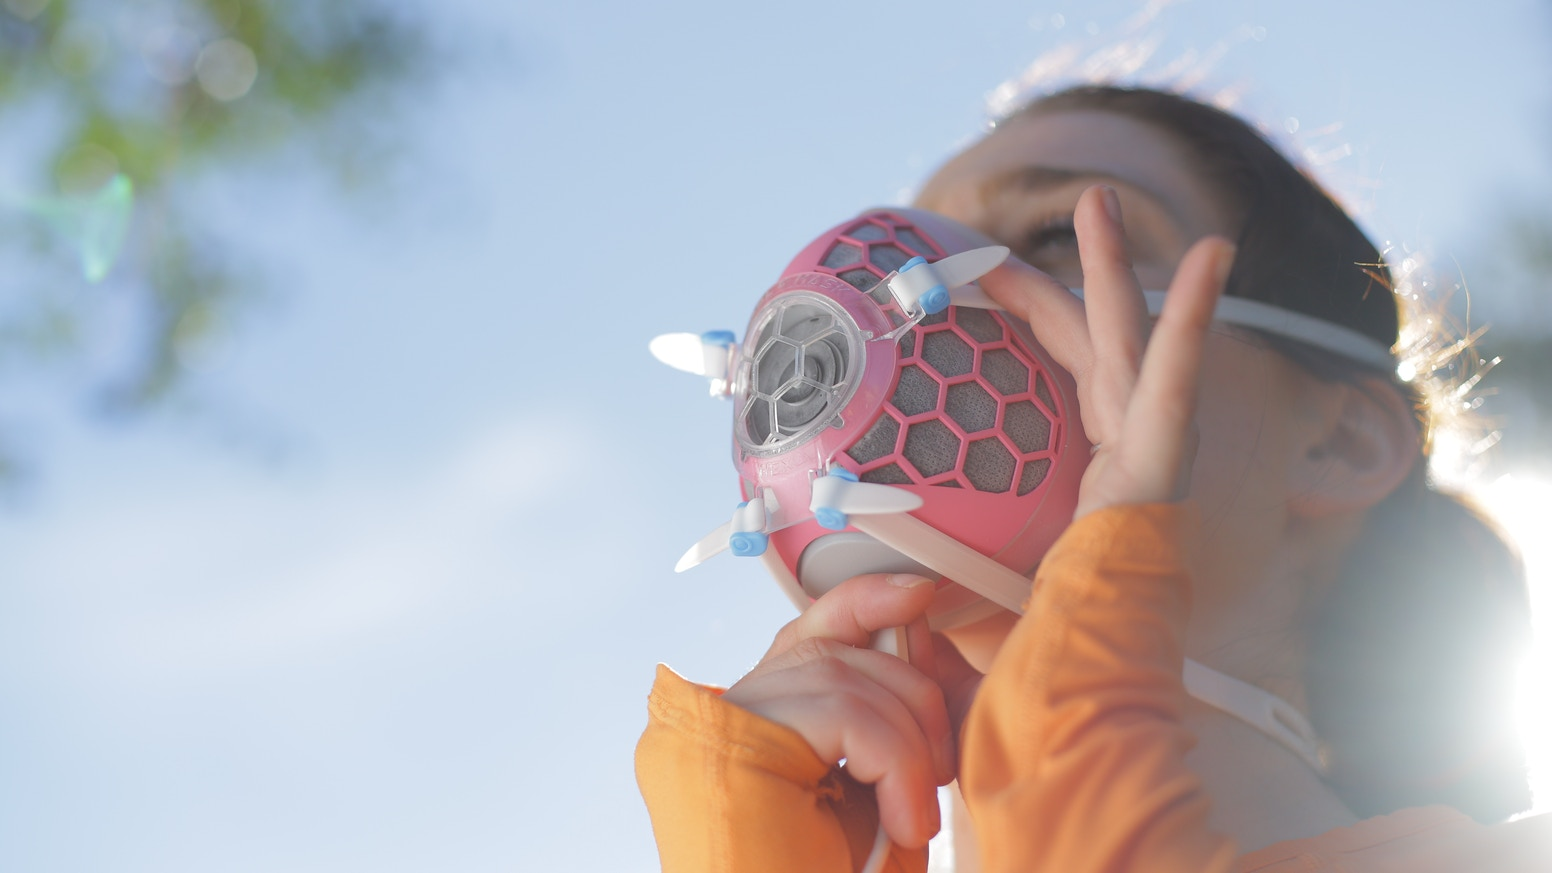 Hexa is the first ever smart air filter mask. It cleans and monitors the air you breathe, providing protection and comfort.